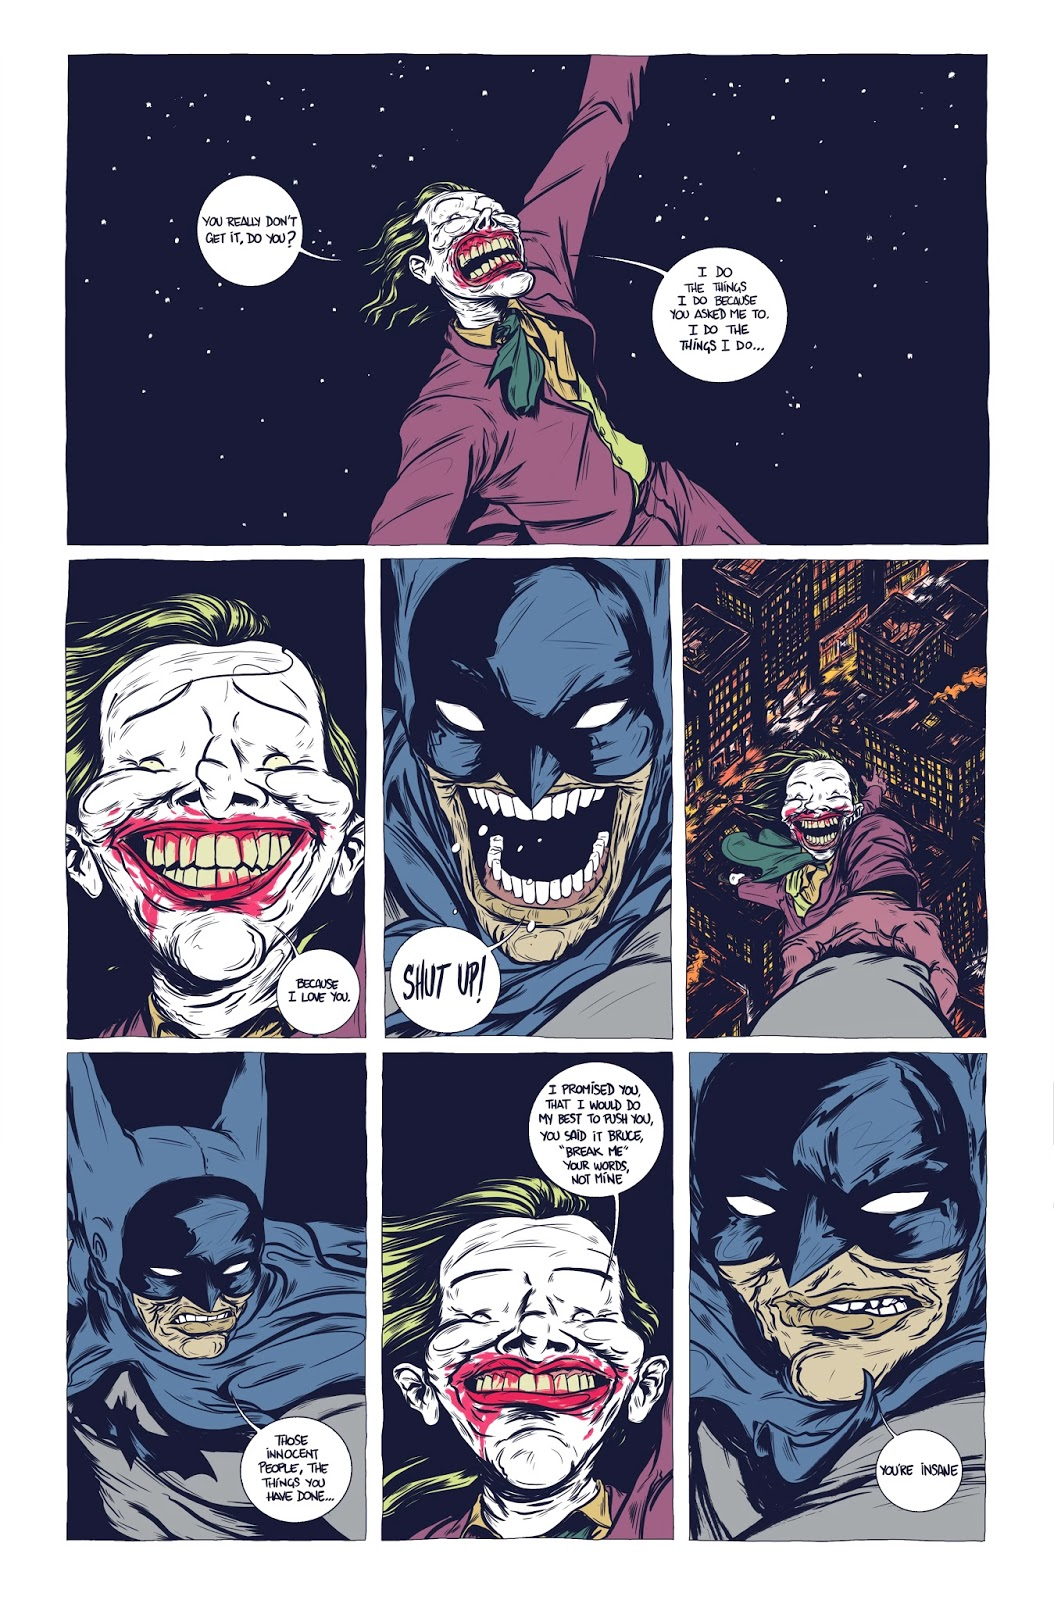 [Fanfic] Batman: The Deal PAGINA+10